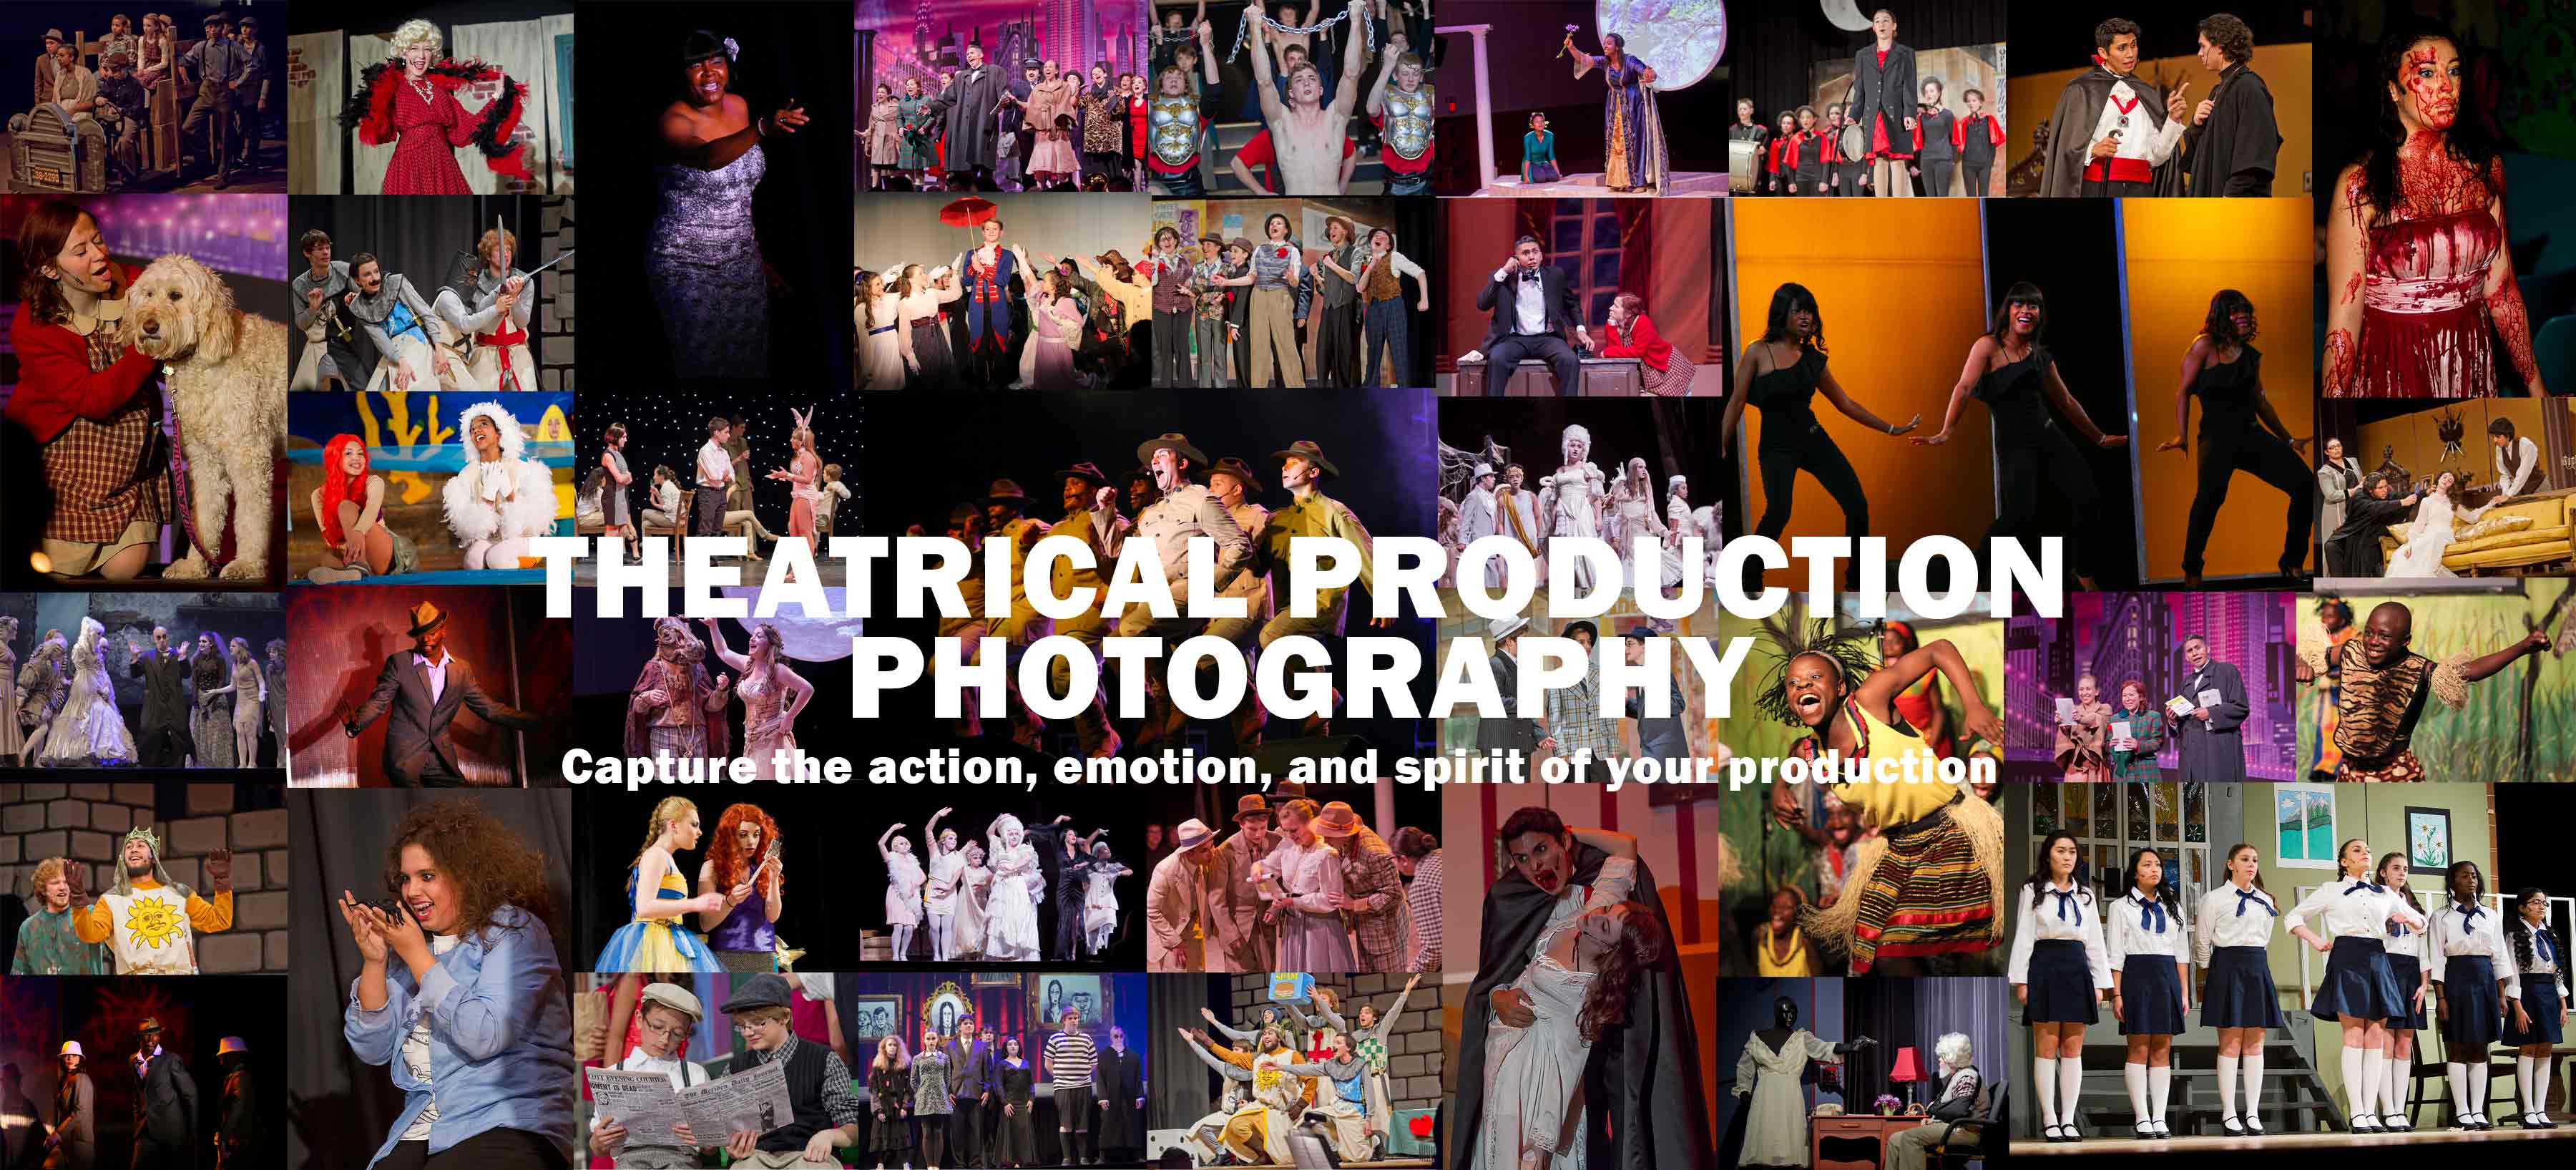 Theatrical Production Photography